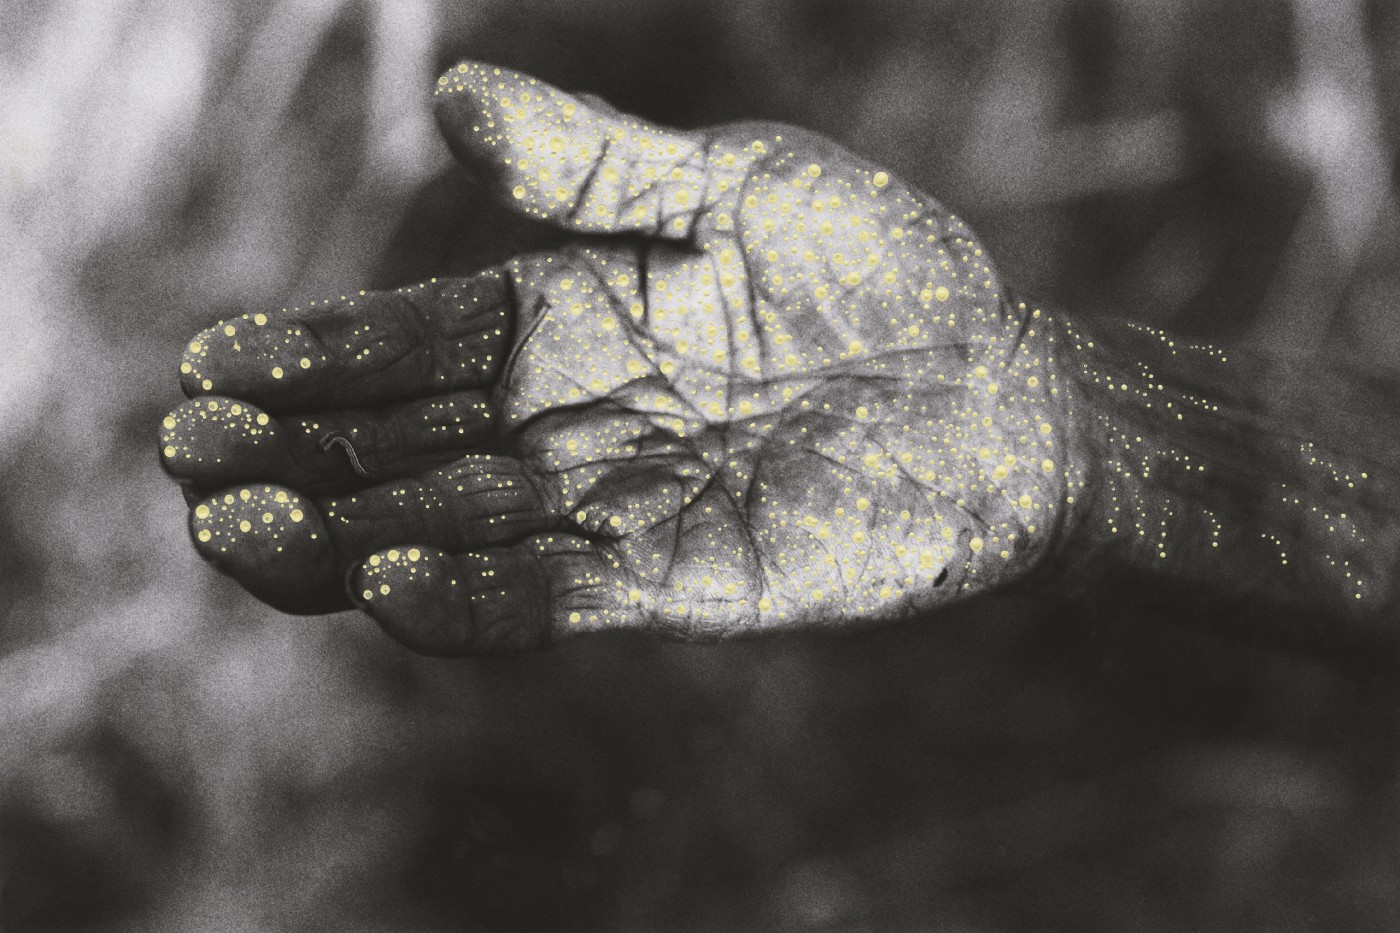 Close-up of an older indigenous woman's hand is held out, palm uppermost. The photographed hand has been painted over with patterns of tiny white and yellow dots.